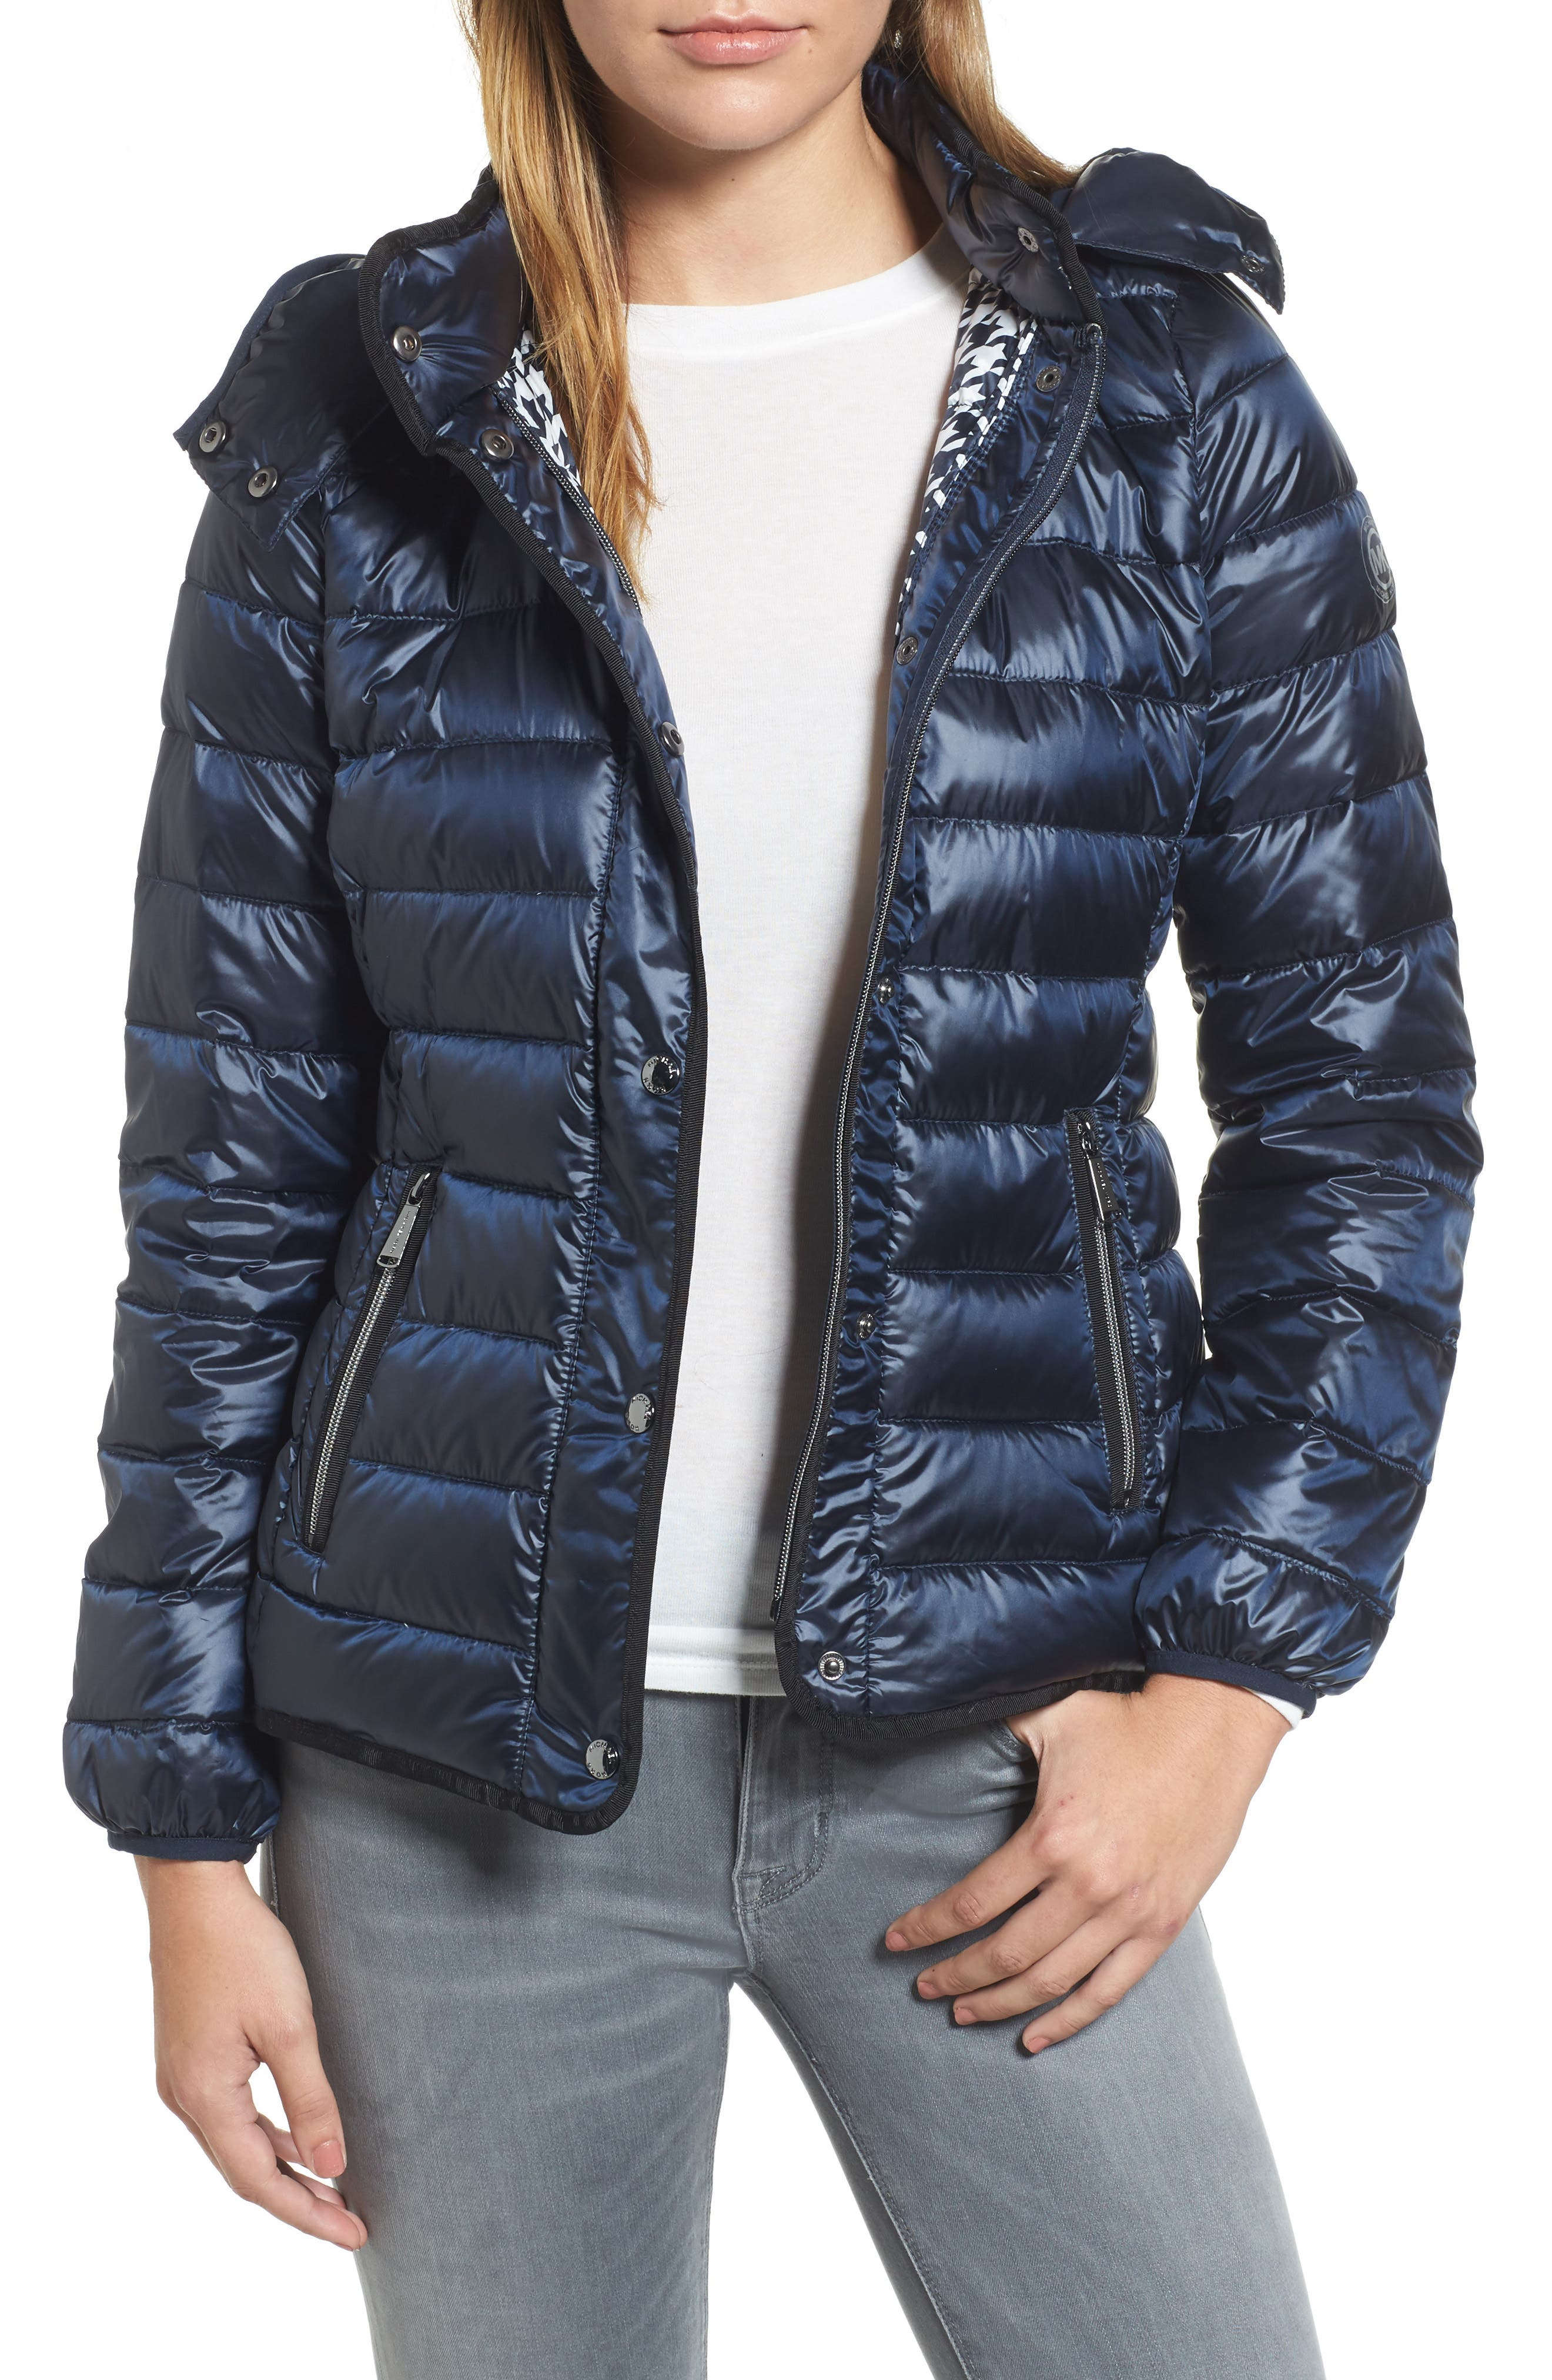 Main Image - MICHAEL Michael Kors Packable Insulated Jacket with Removable Hood